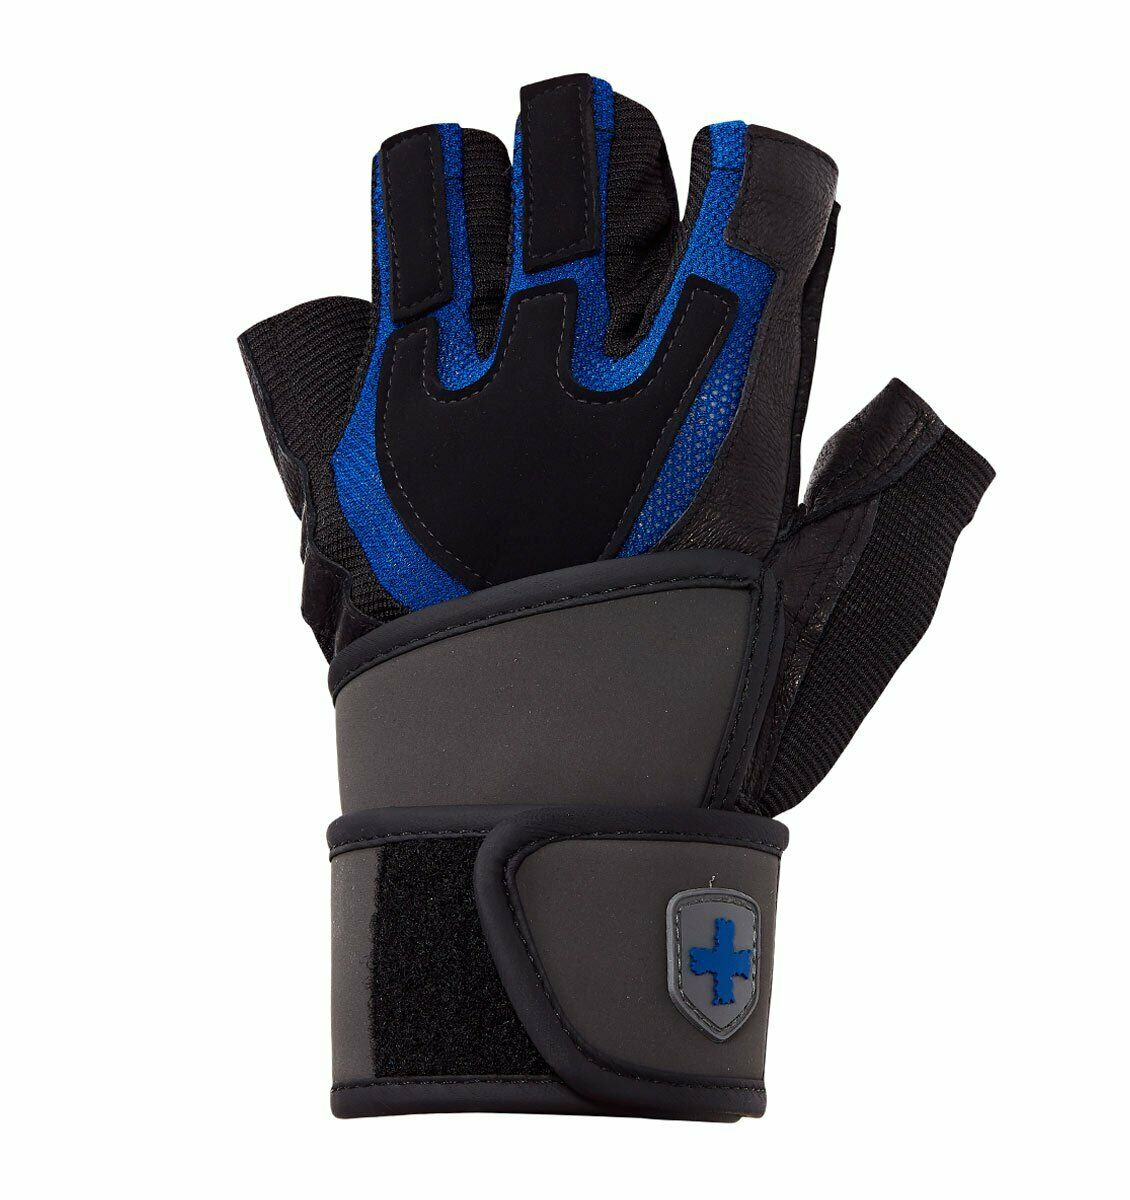 NEW HARBINGER TRAINING GRIP WEIGHT LIFTING WORK OUT BIKE GLOVES